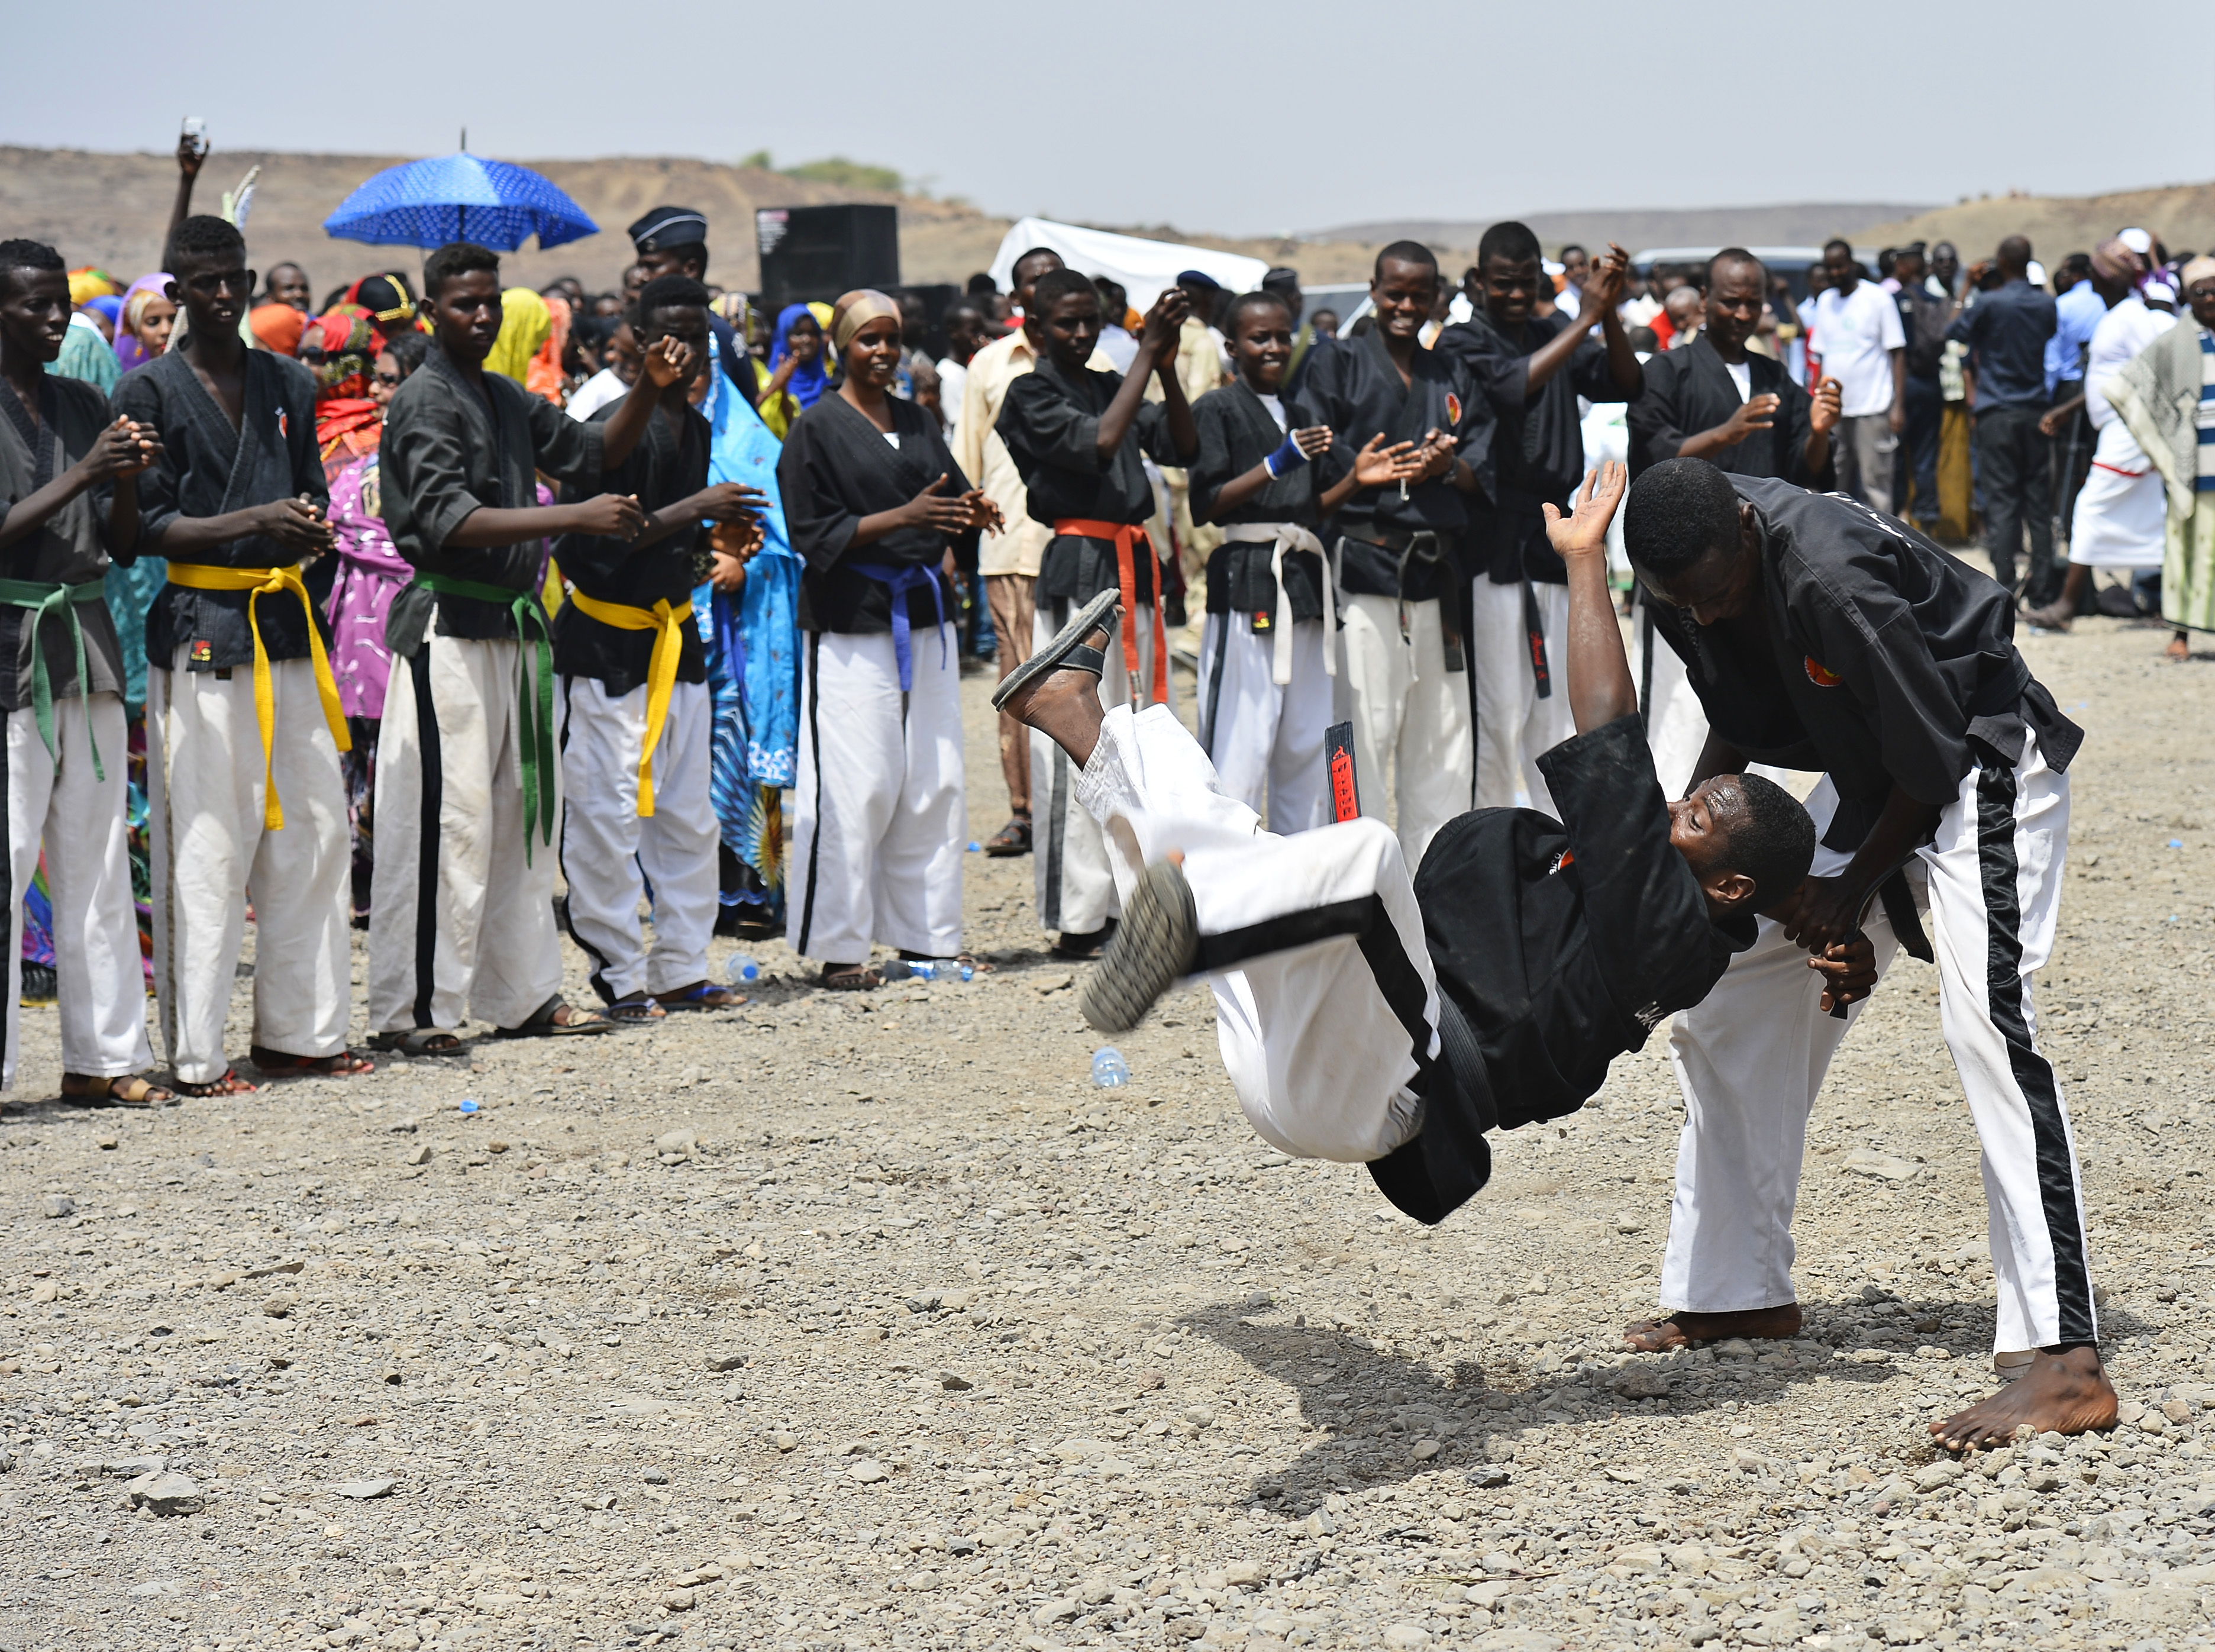 Members of the Dakaïto Ryu martial arts group perform for Habib Mohamed Loita, the 21st Sultan of Gobaad, during his induction ceremony in Dikhil, Djibouti, May 22, 2015. (U.S. Air Force photo by Senior Airman Nesha Humes)